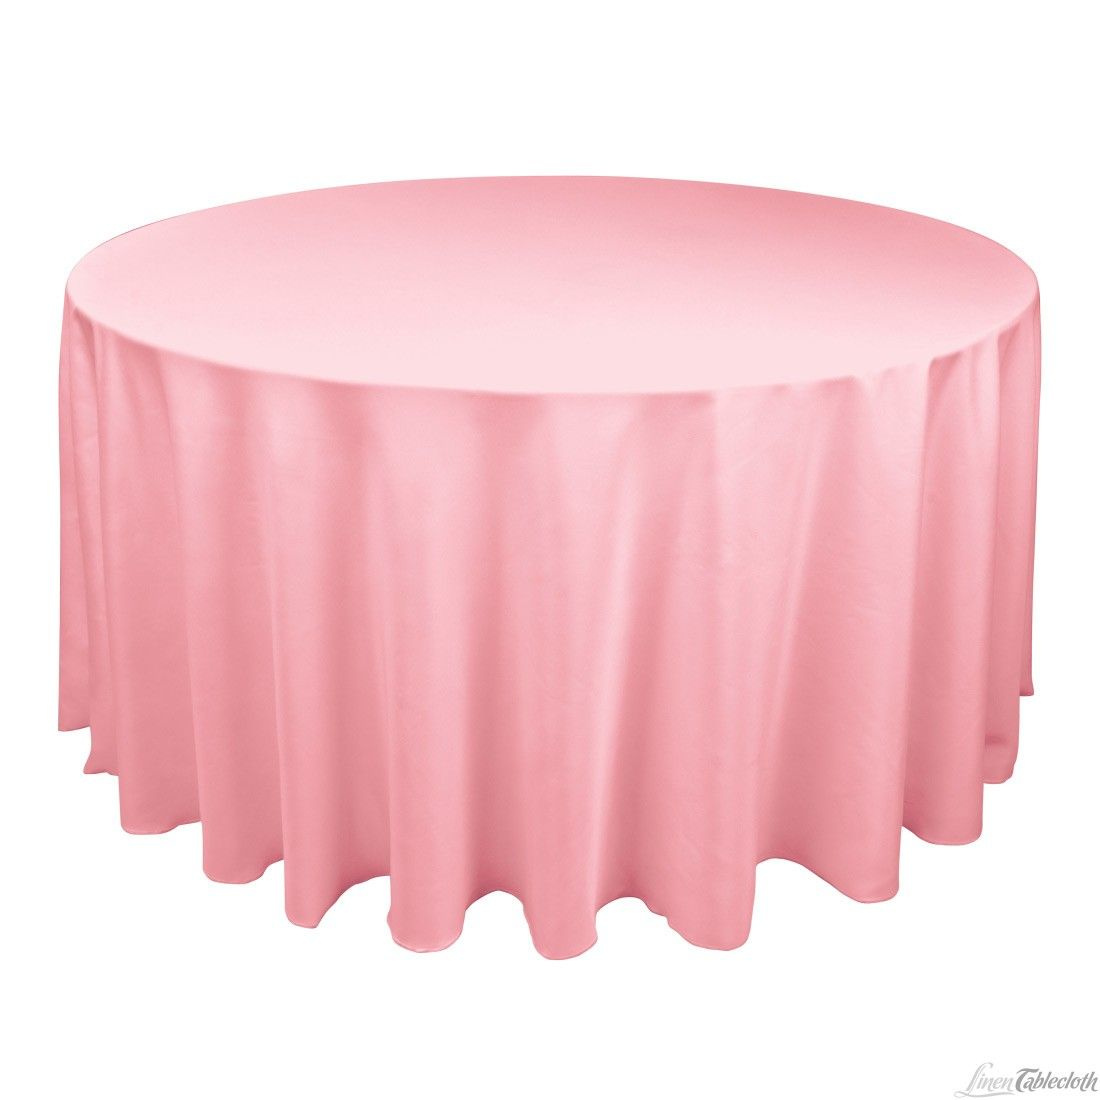 Pink Round Table.Pink Round Cake Table Google Search Team Umizoomi Inspiration